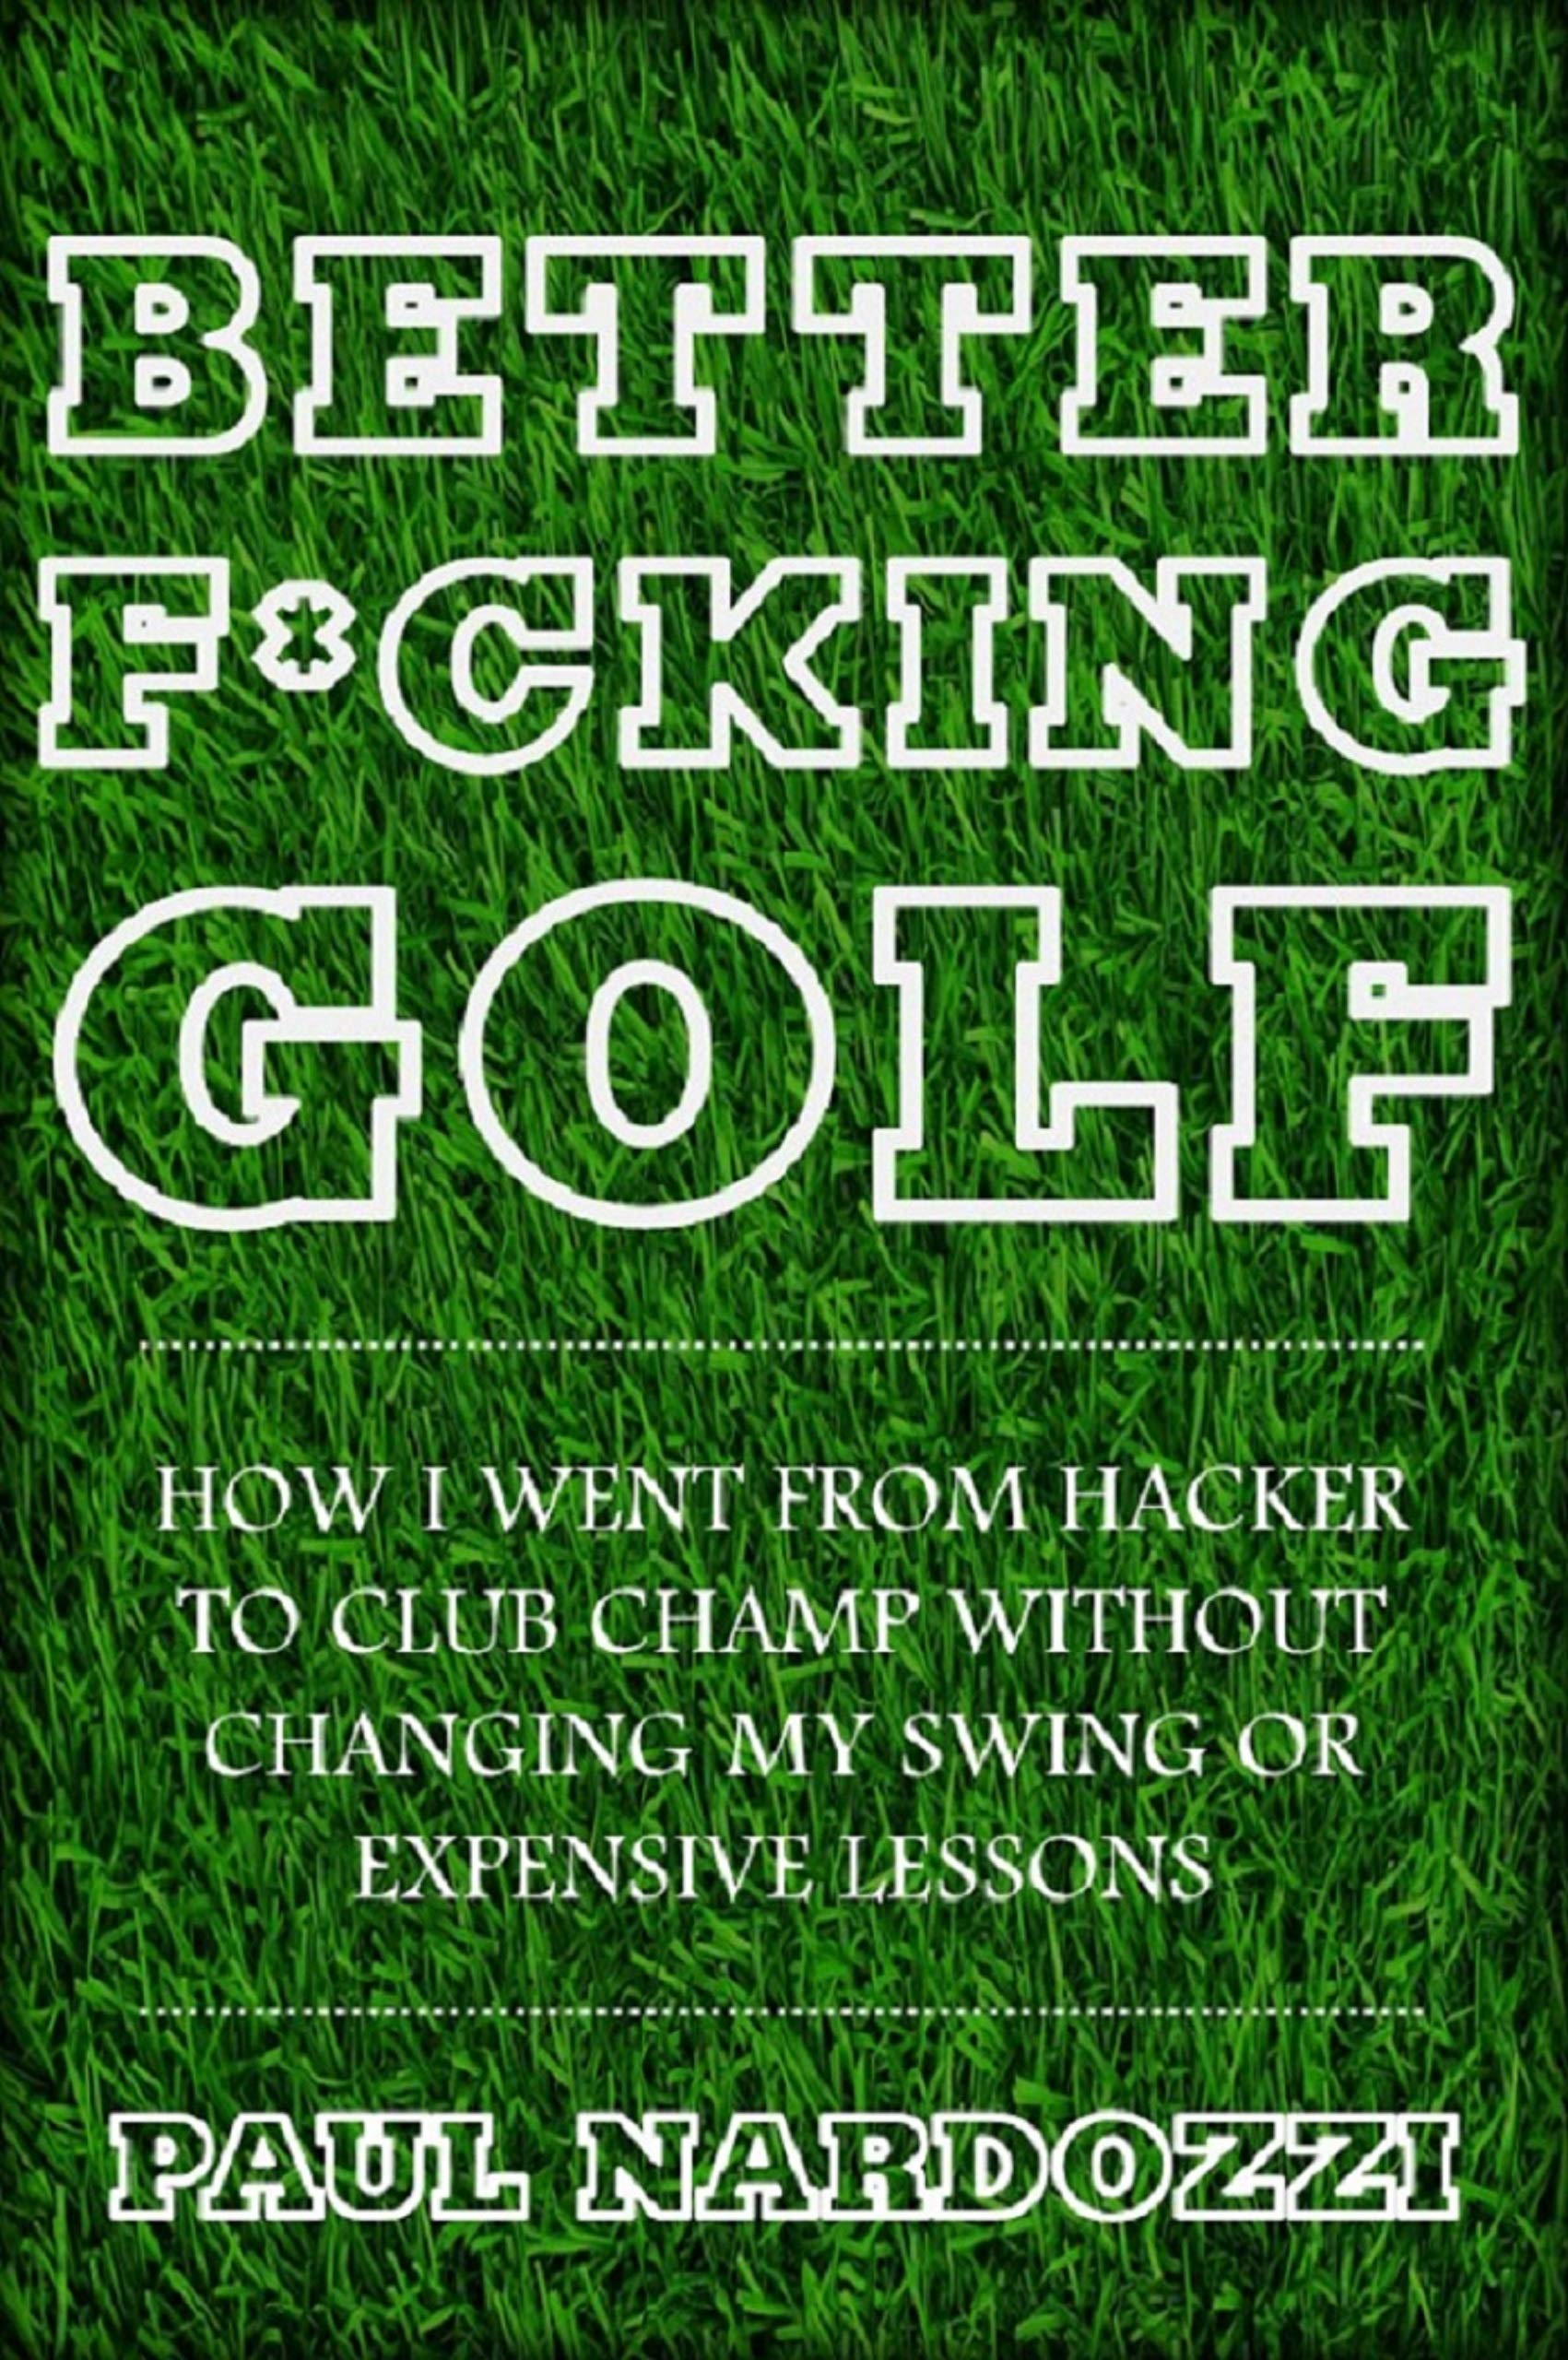 Better *%!#ing Golf: How I Went From Hacker to Club Champ Without Changing My Swing or Expensive Lessons